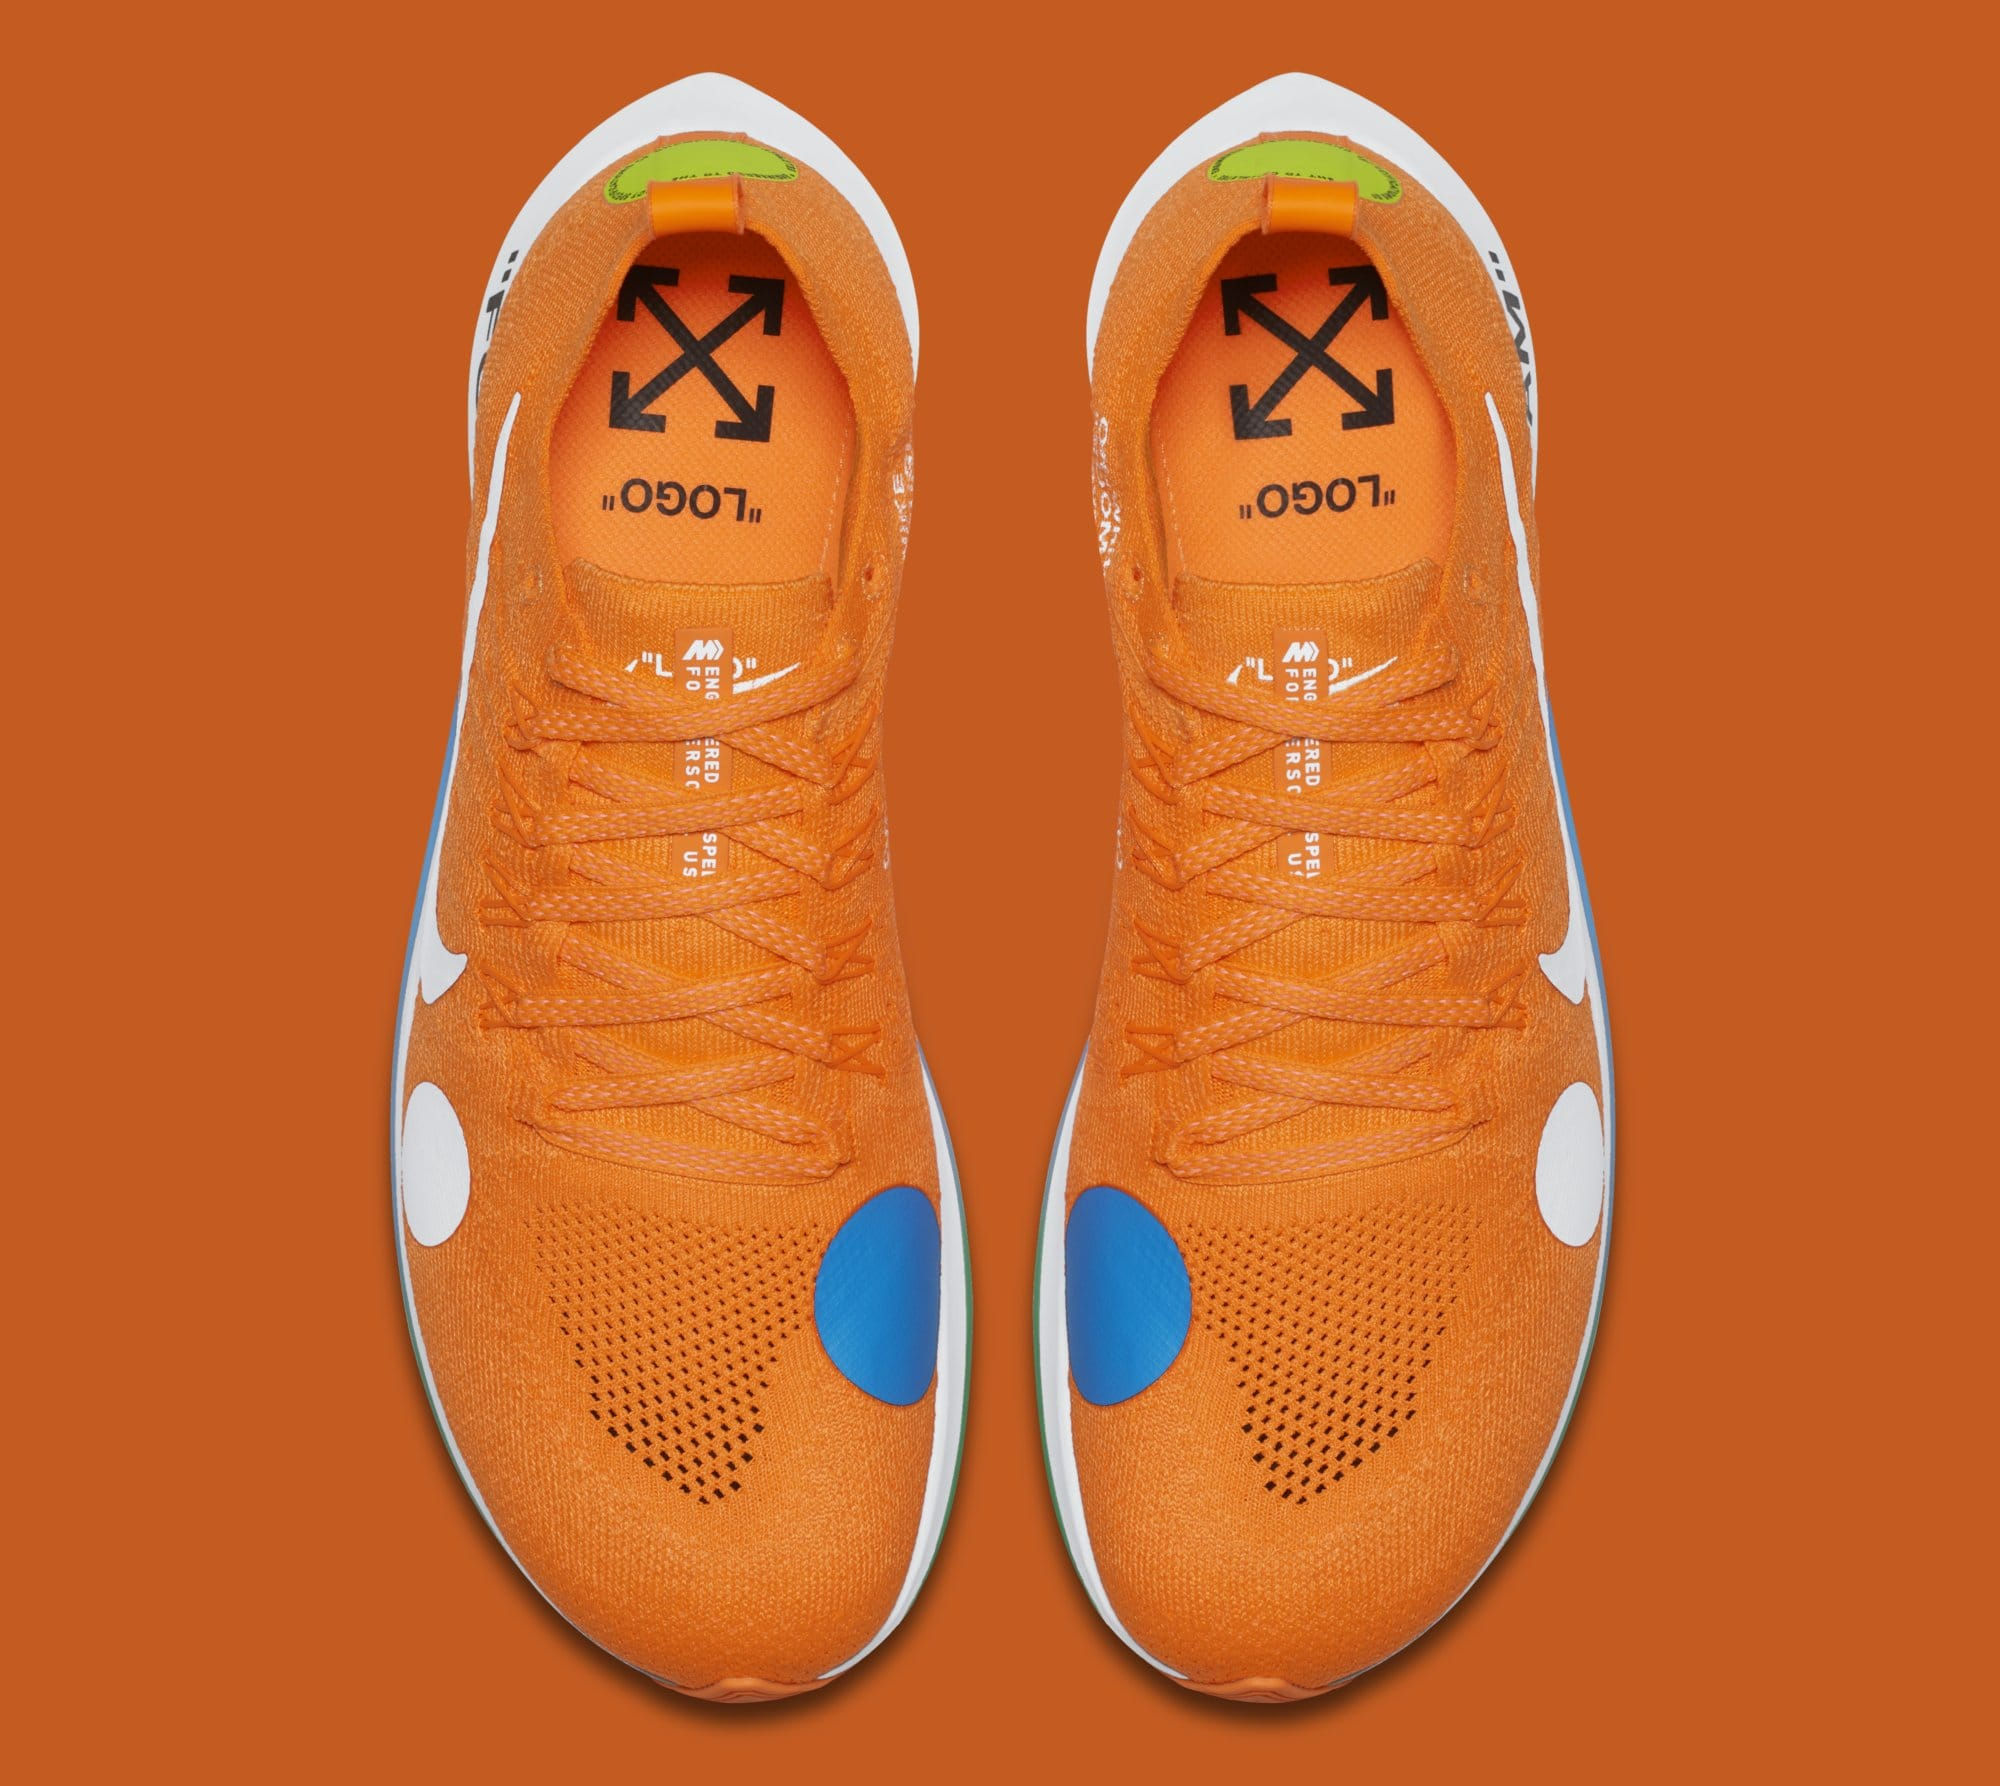 0ffd91c928a9 Image via Nike Off-White x Nike Zoom Fly Mercurial Flyknit  Total Orange   AO2115-800